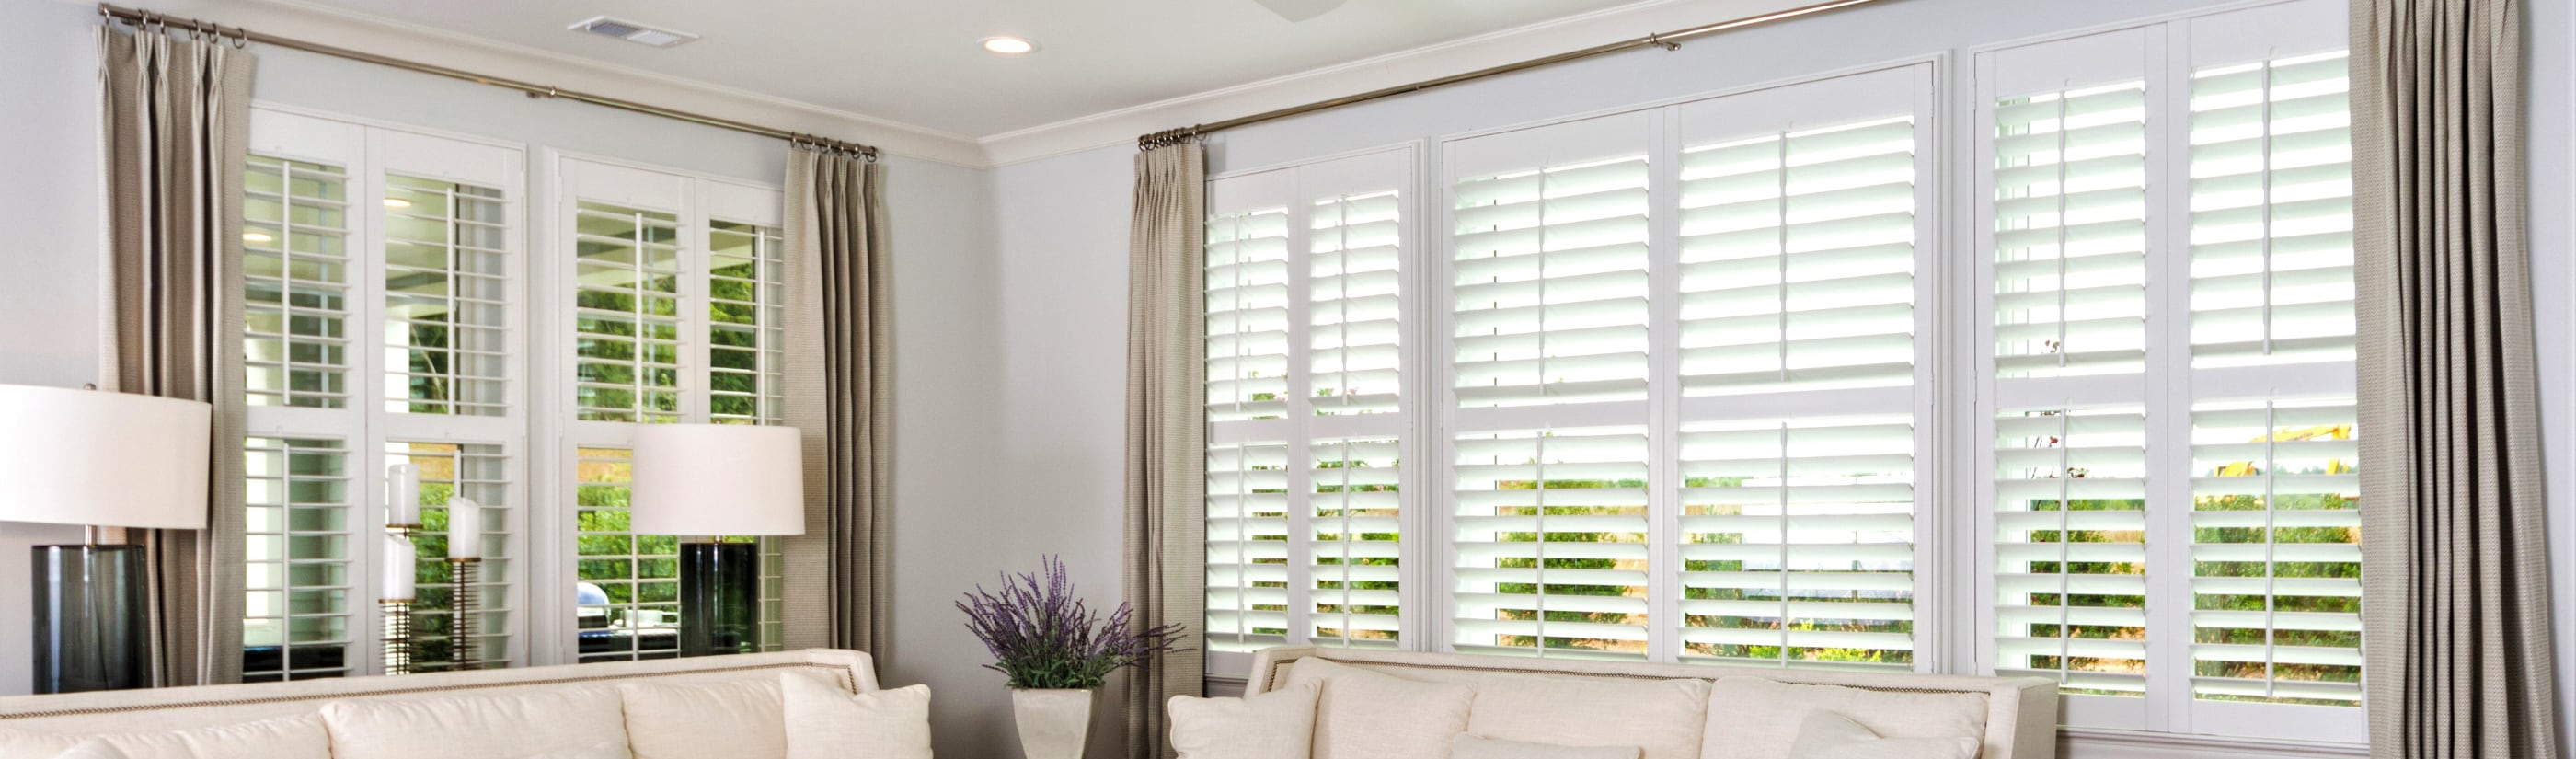 Polywood Shutters Paints In Jacksonville